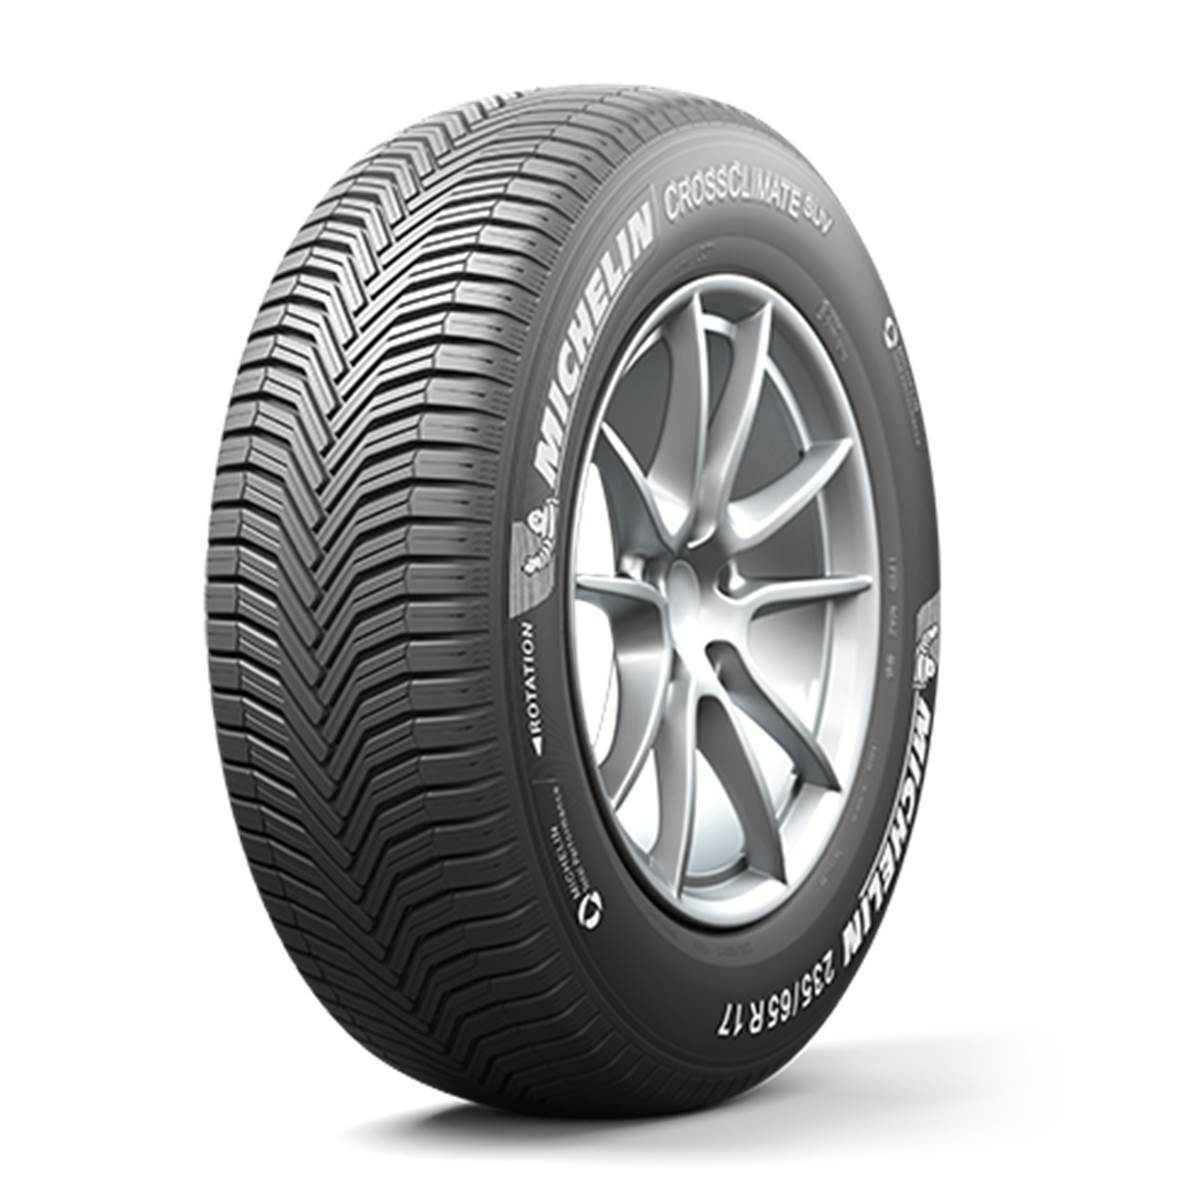 Michelin Crossclimate Suv Xl